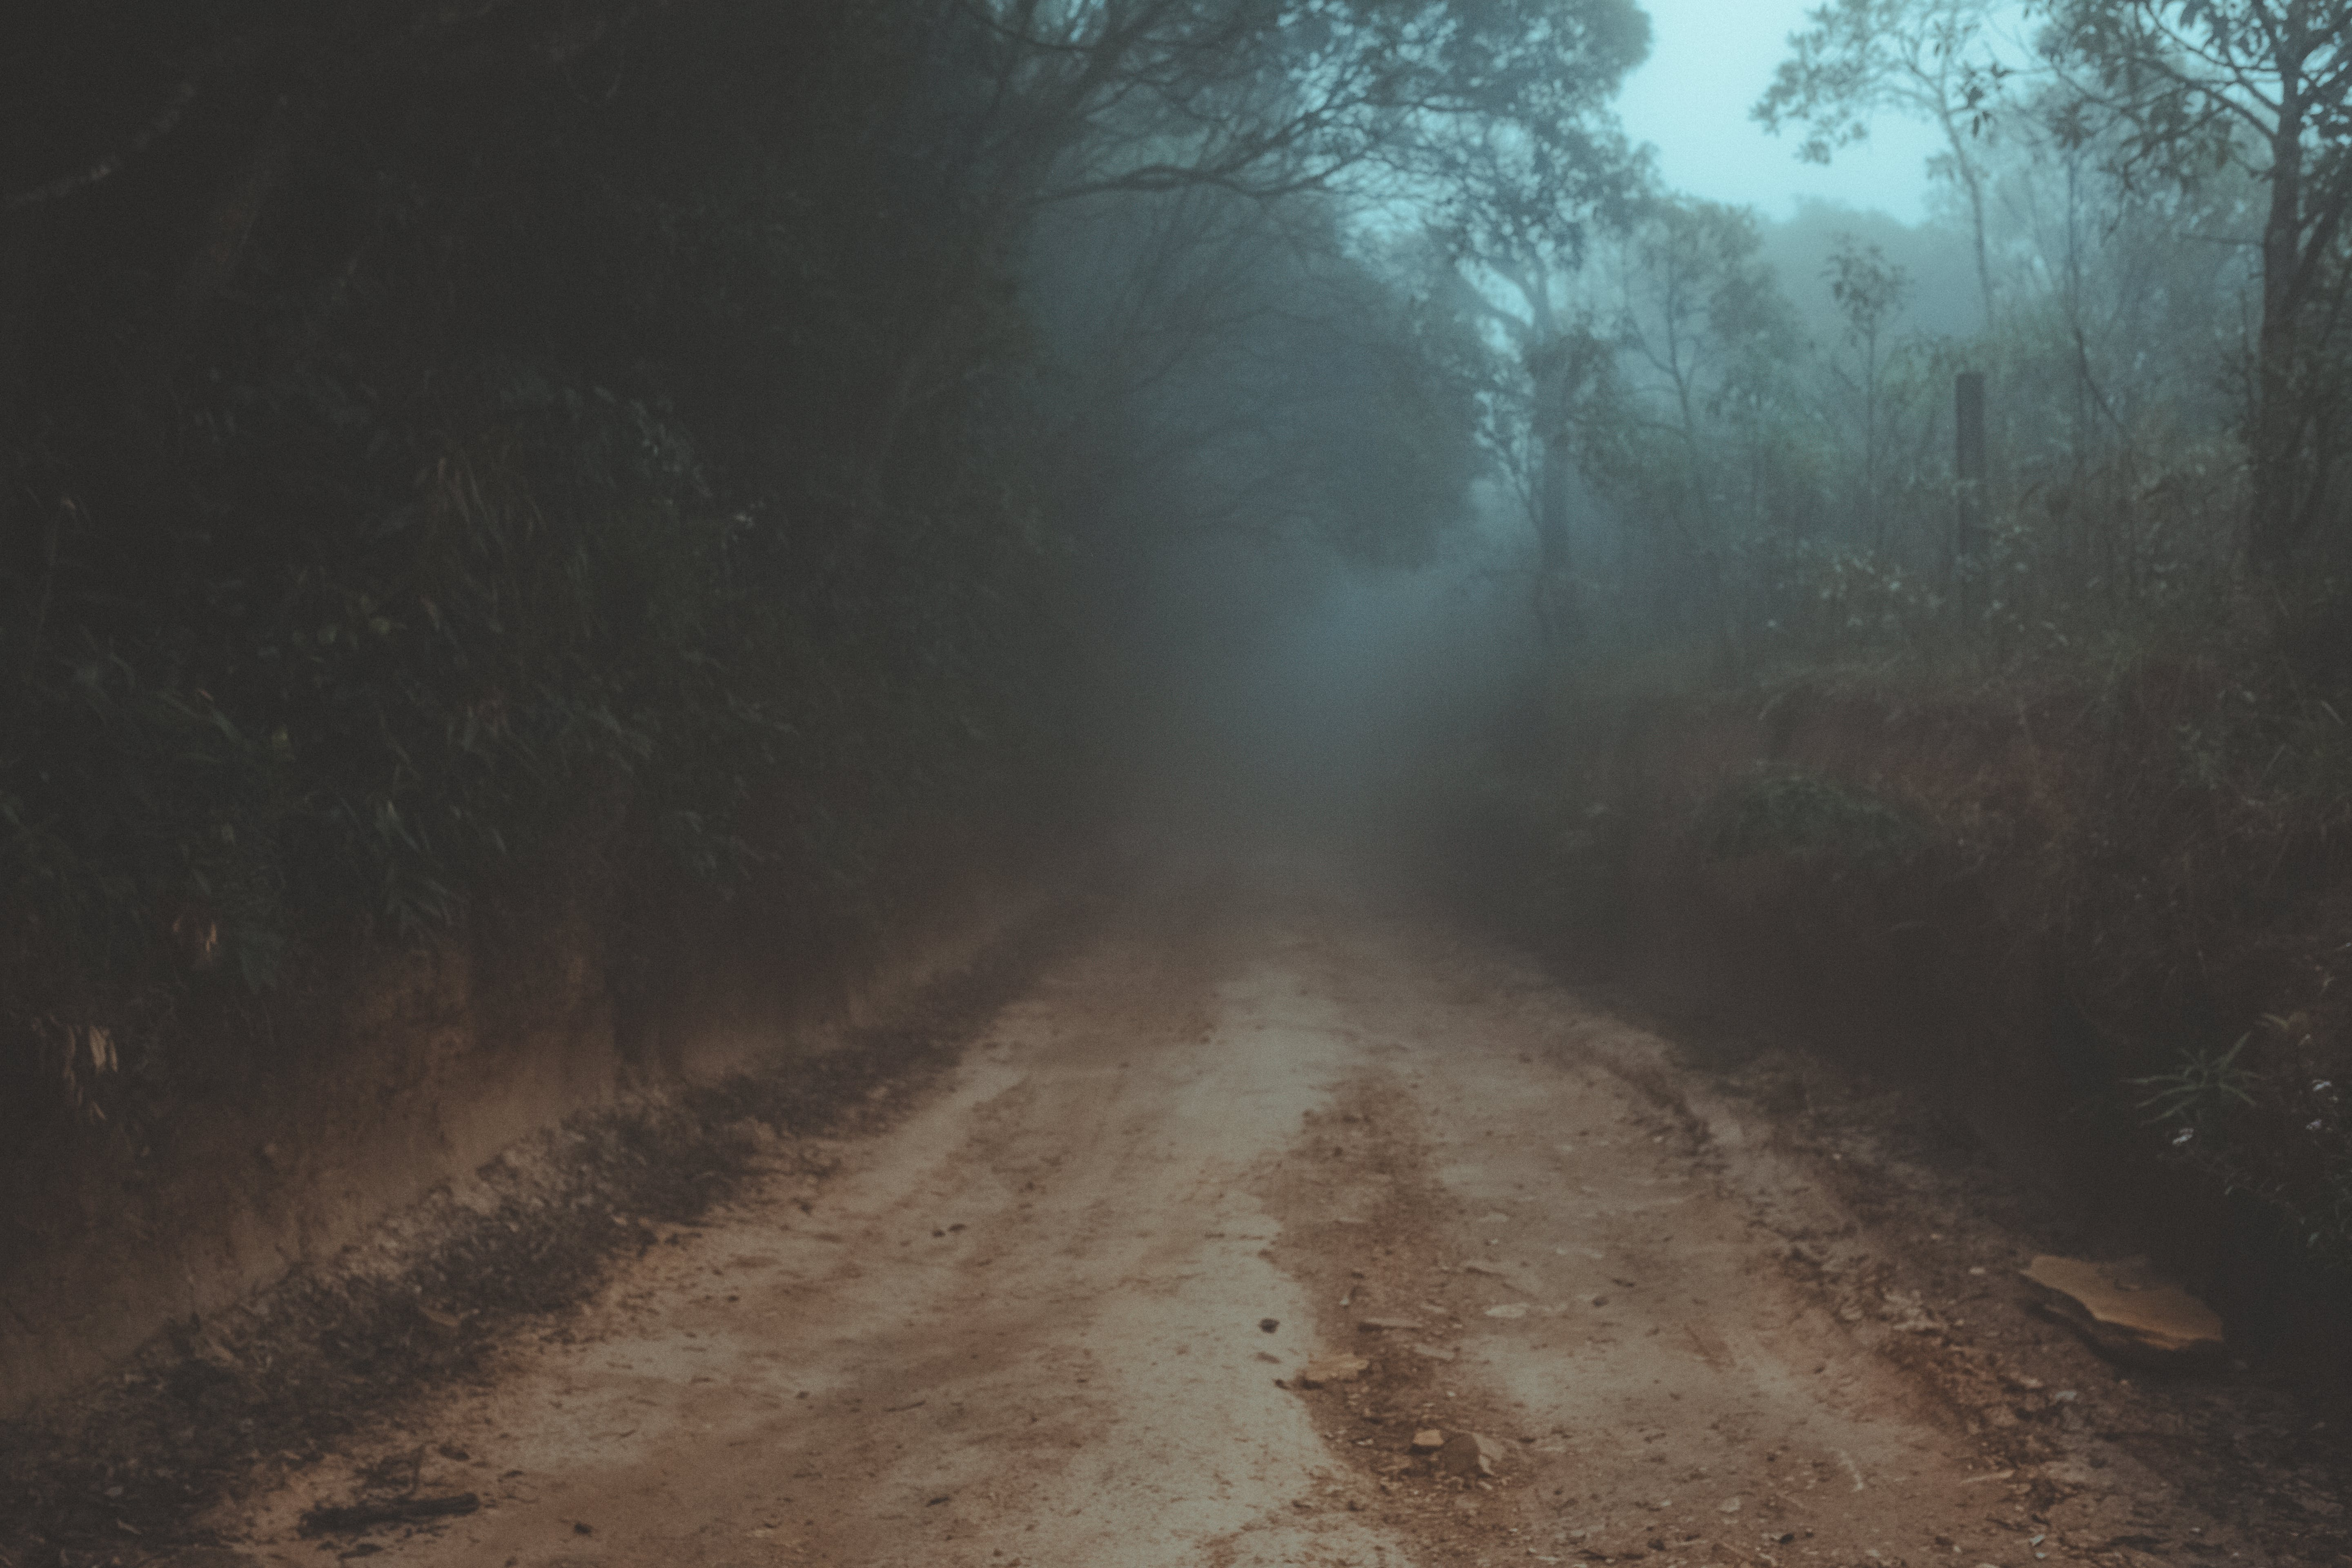 Dirt Track Between Trees and Plants during Foggy Daytime